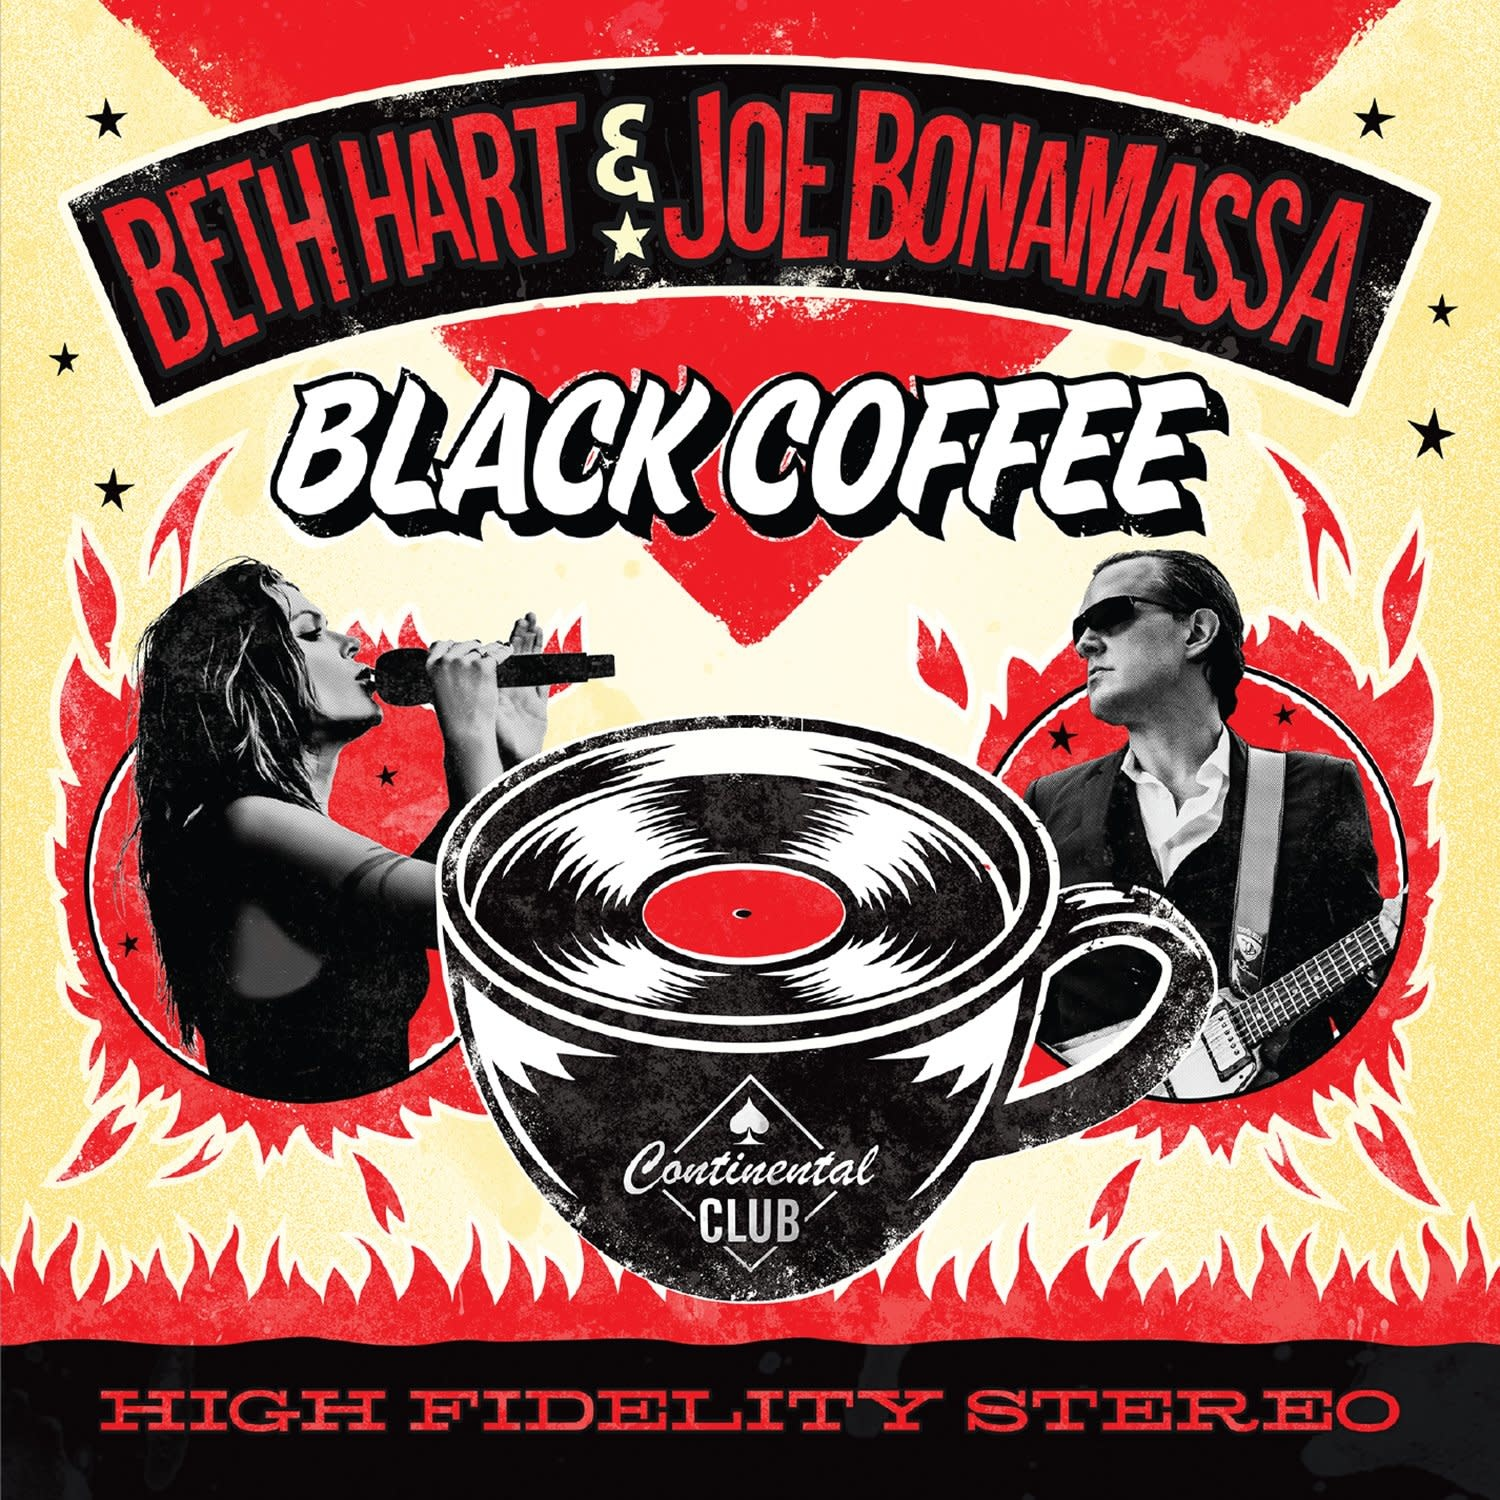 Beth Hart & Joe Bonamassa ‎– Black Coffee